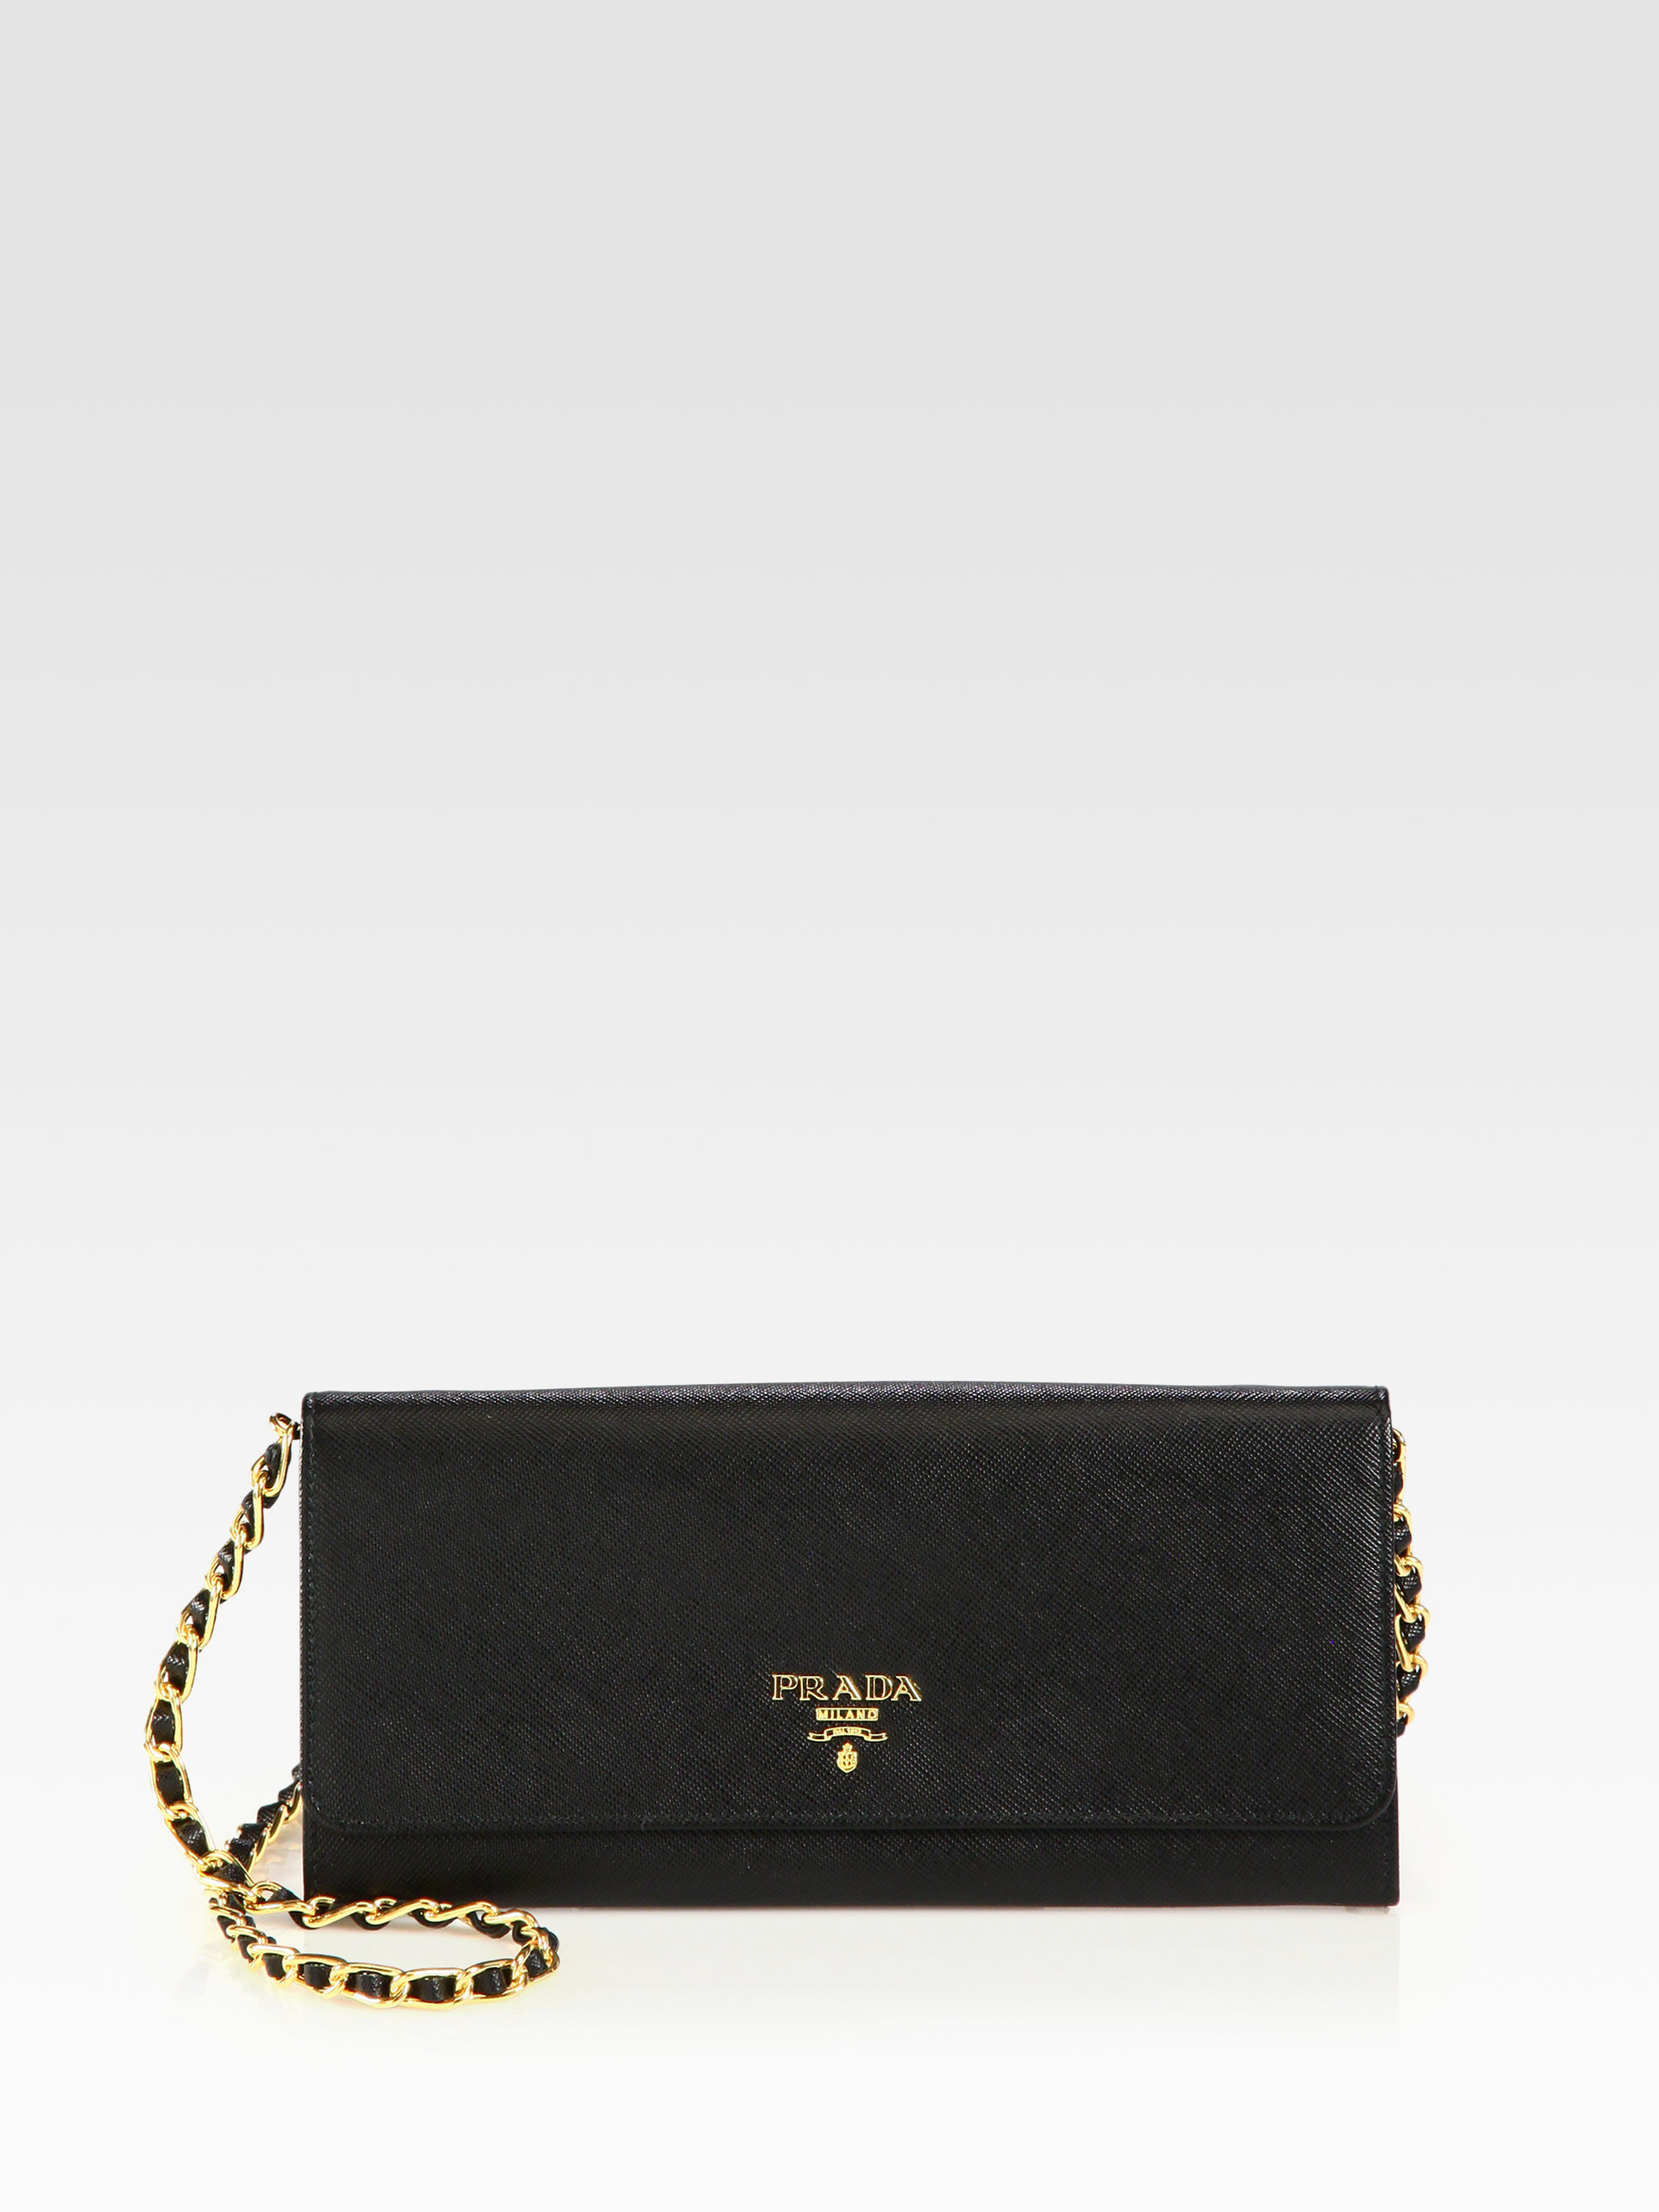 Prada Saffiano Metal Shoulder Bag \u2013 Shoulder Travel Bag